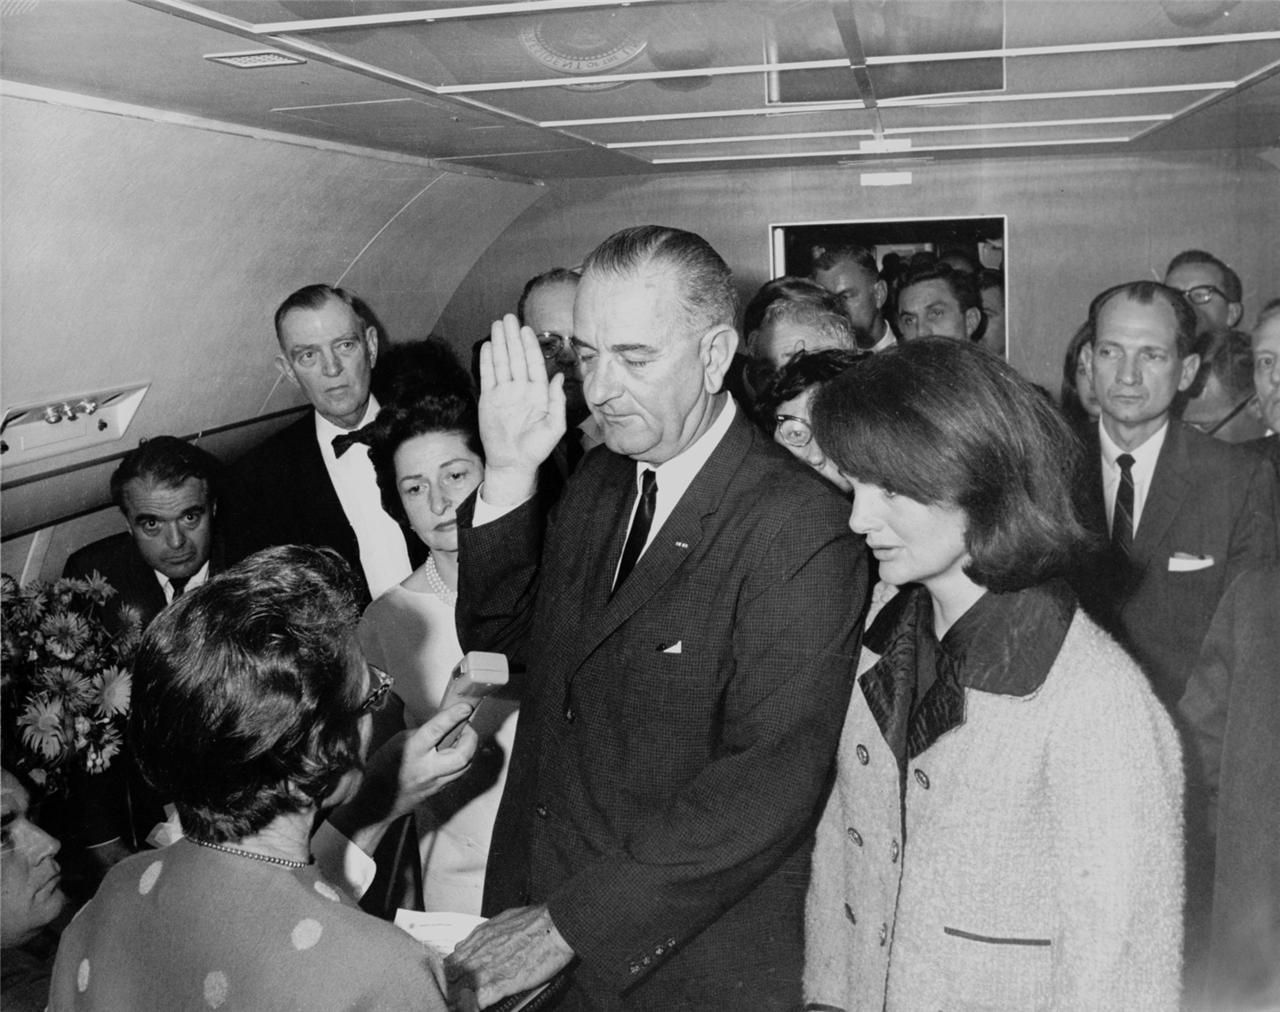 Details About Lyndon B Johnson Being Sworn In Air Force One Glossy Poster Picture Photo 1414 Iconic Photos Pink Suit Air Force Ones